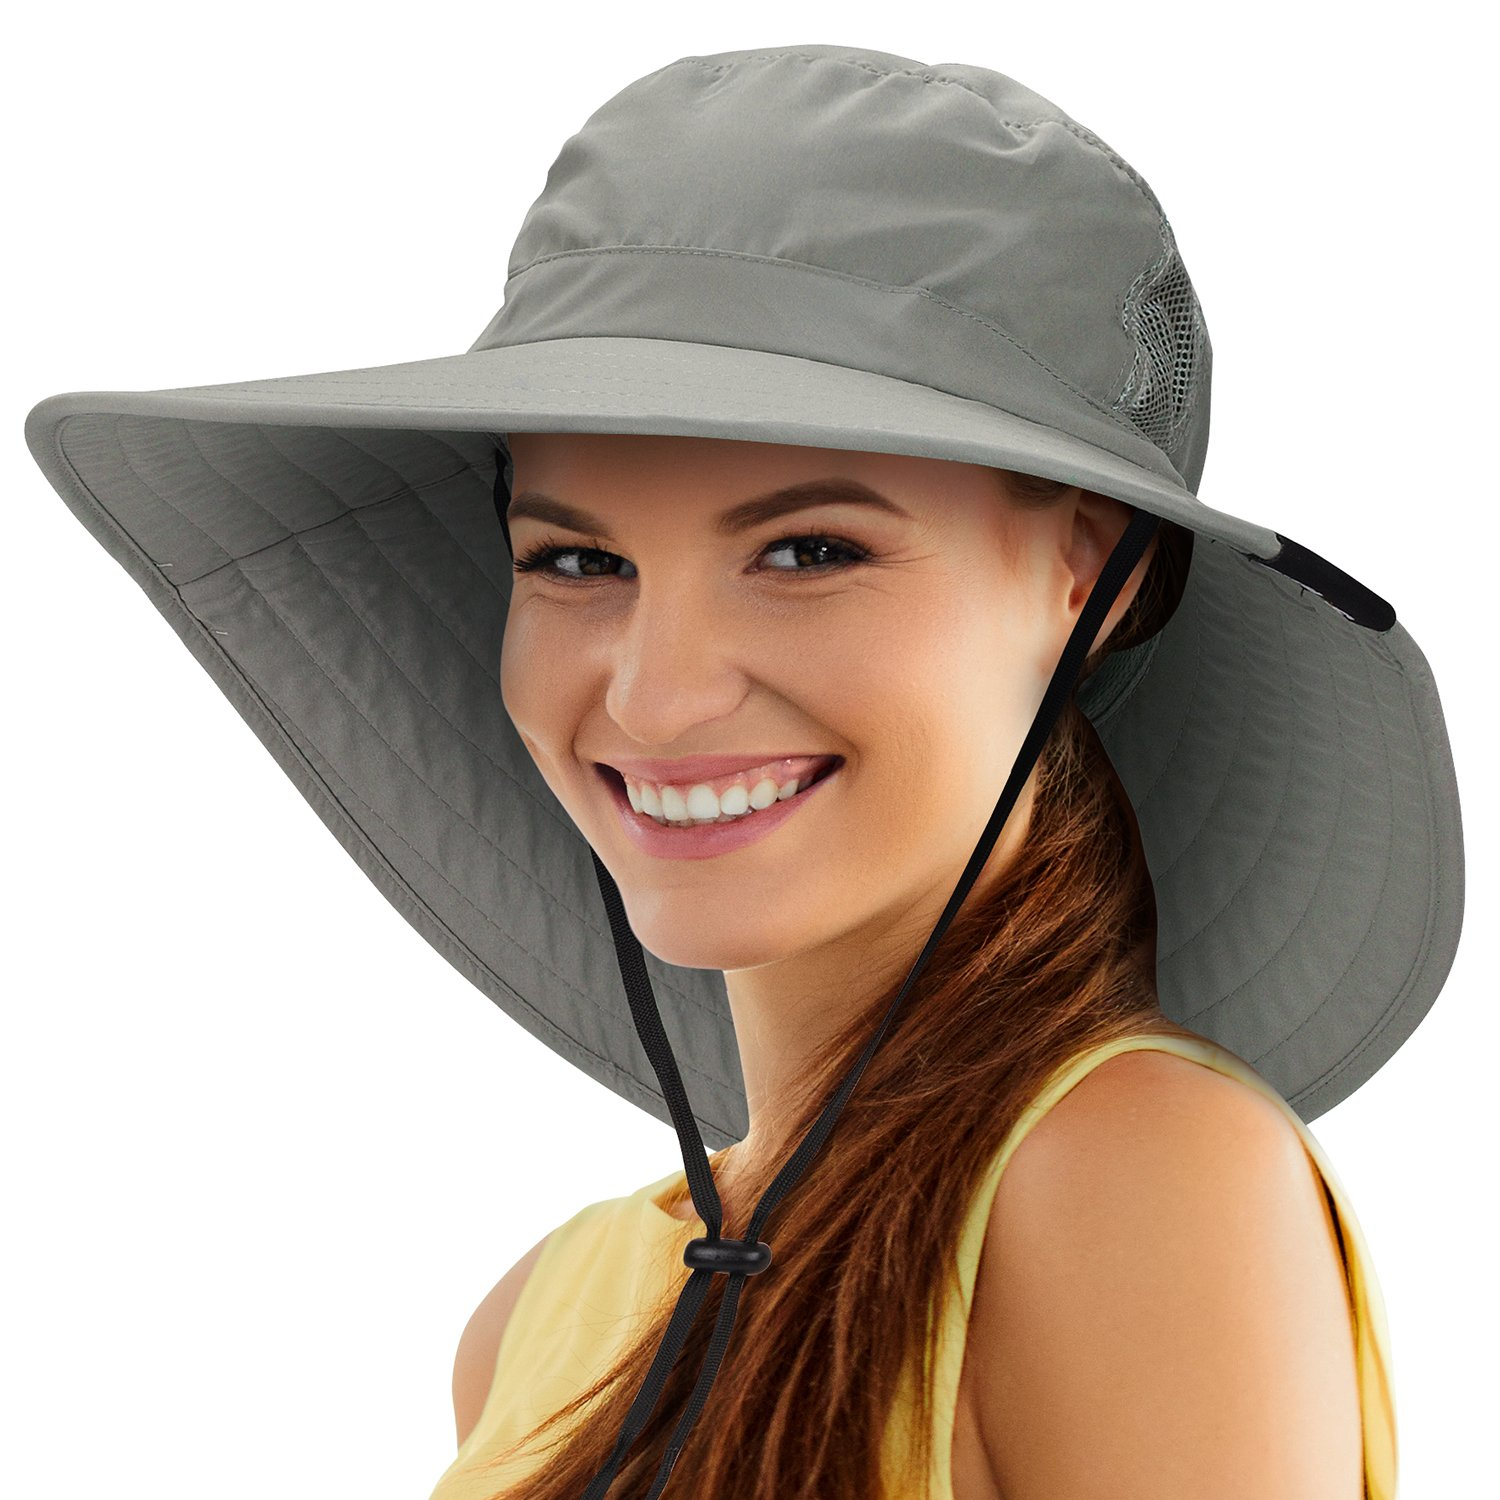 Tirrinia Unisex Sun Hat Fishing Boonie Cap Wide Brim Safari Hat with Adjustable Drawstring for Women Kids Outdoor Hiking Hunting Boating Desert Hawaiian, Grey